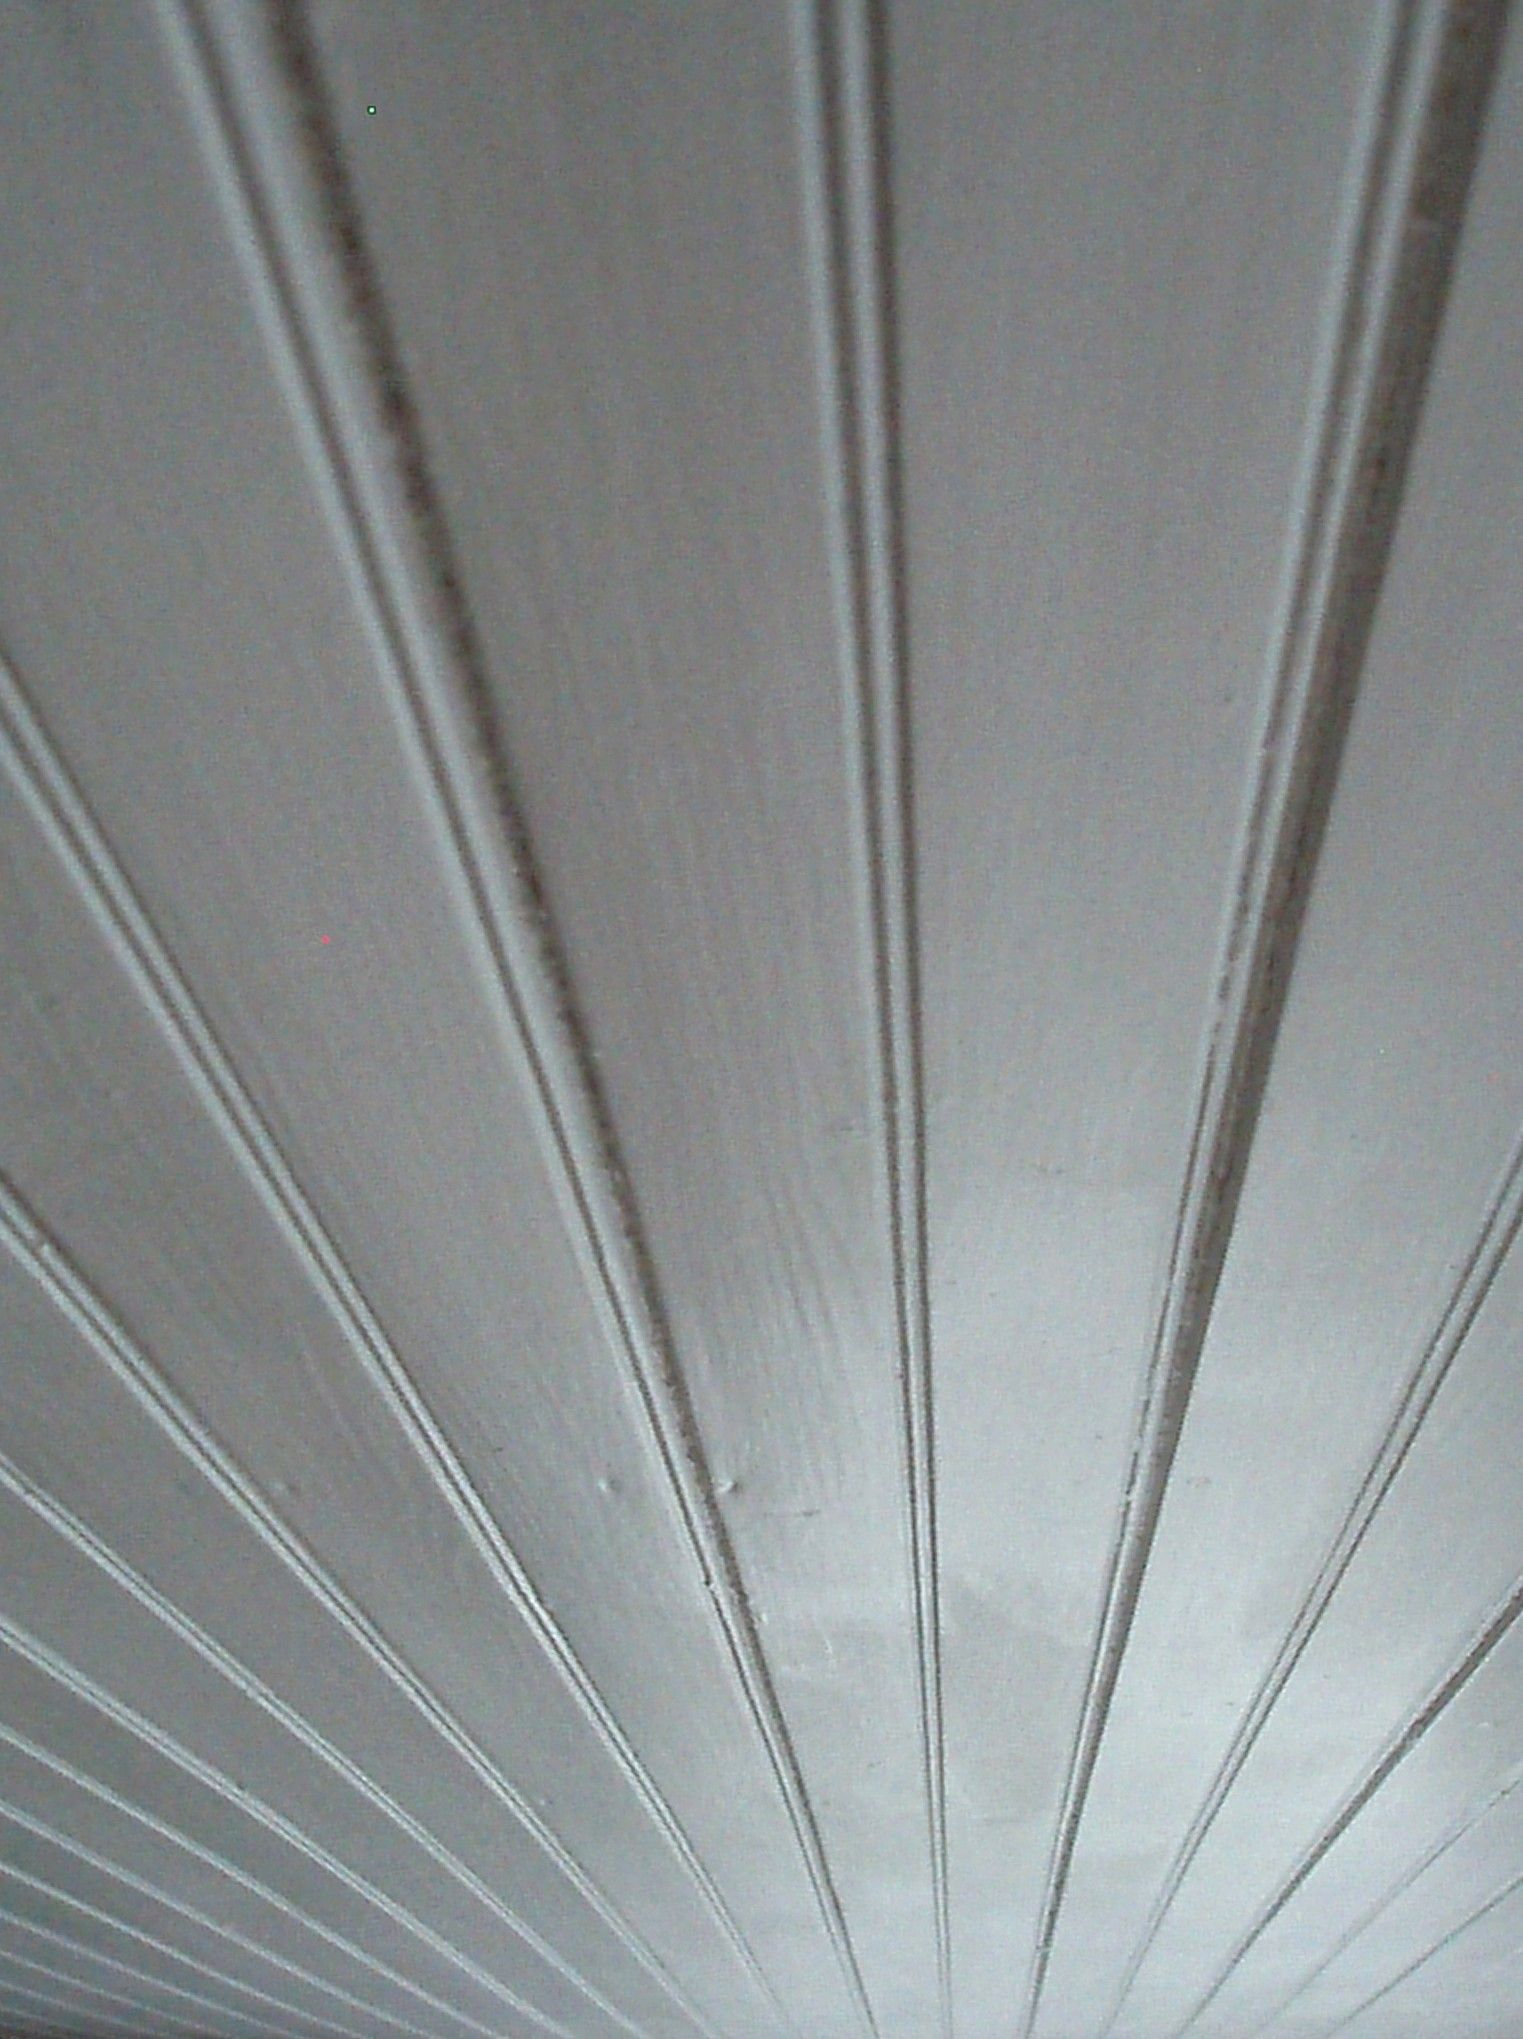 how the court ivey ceiling boards ceilings fix tiles celotex to